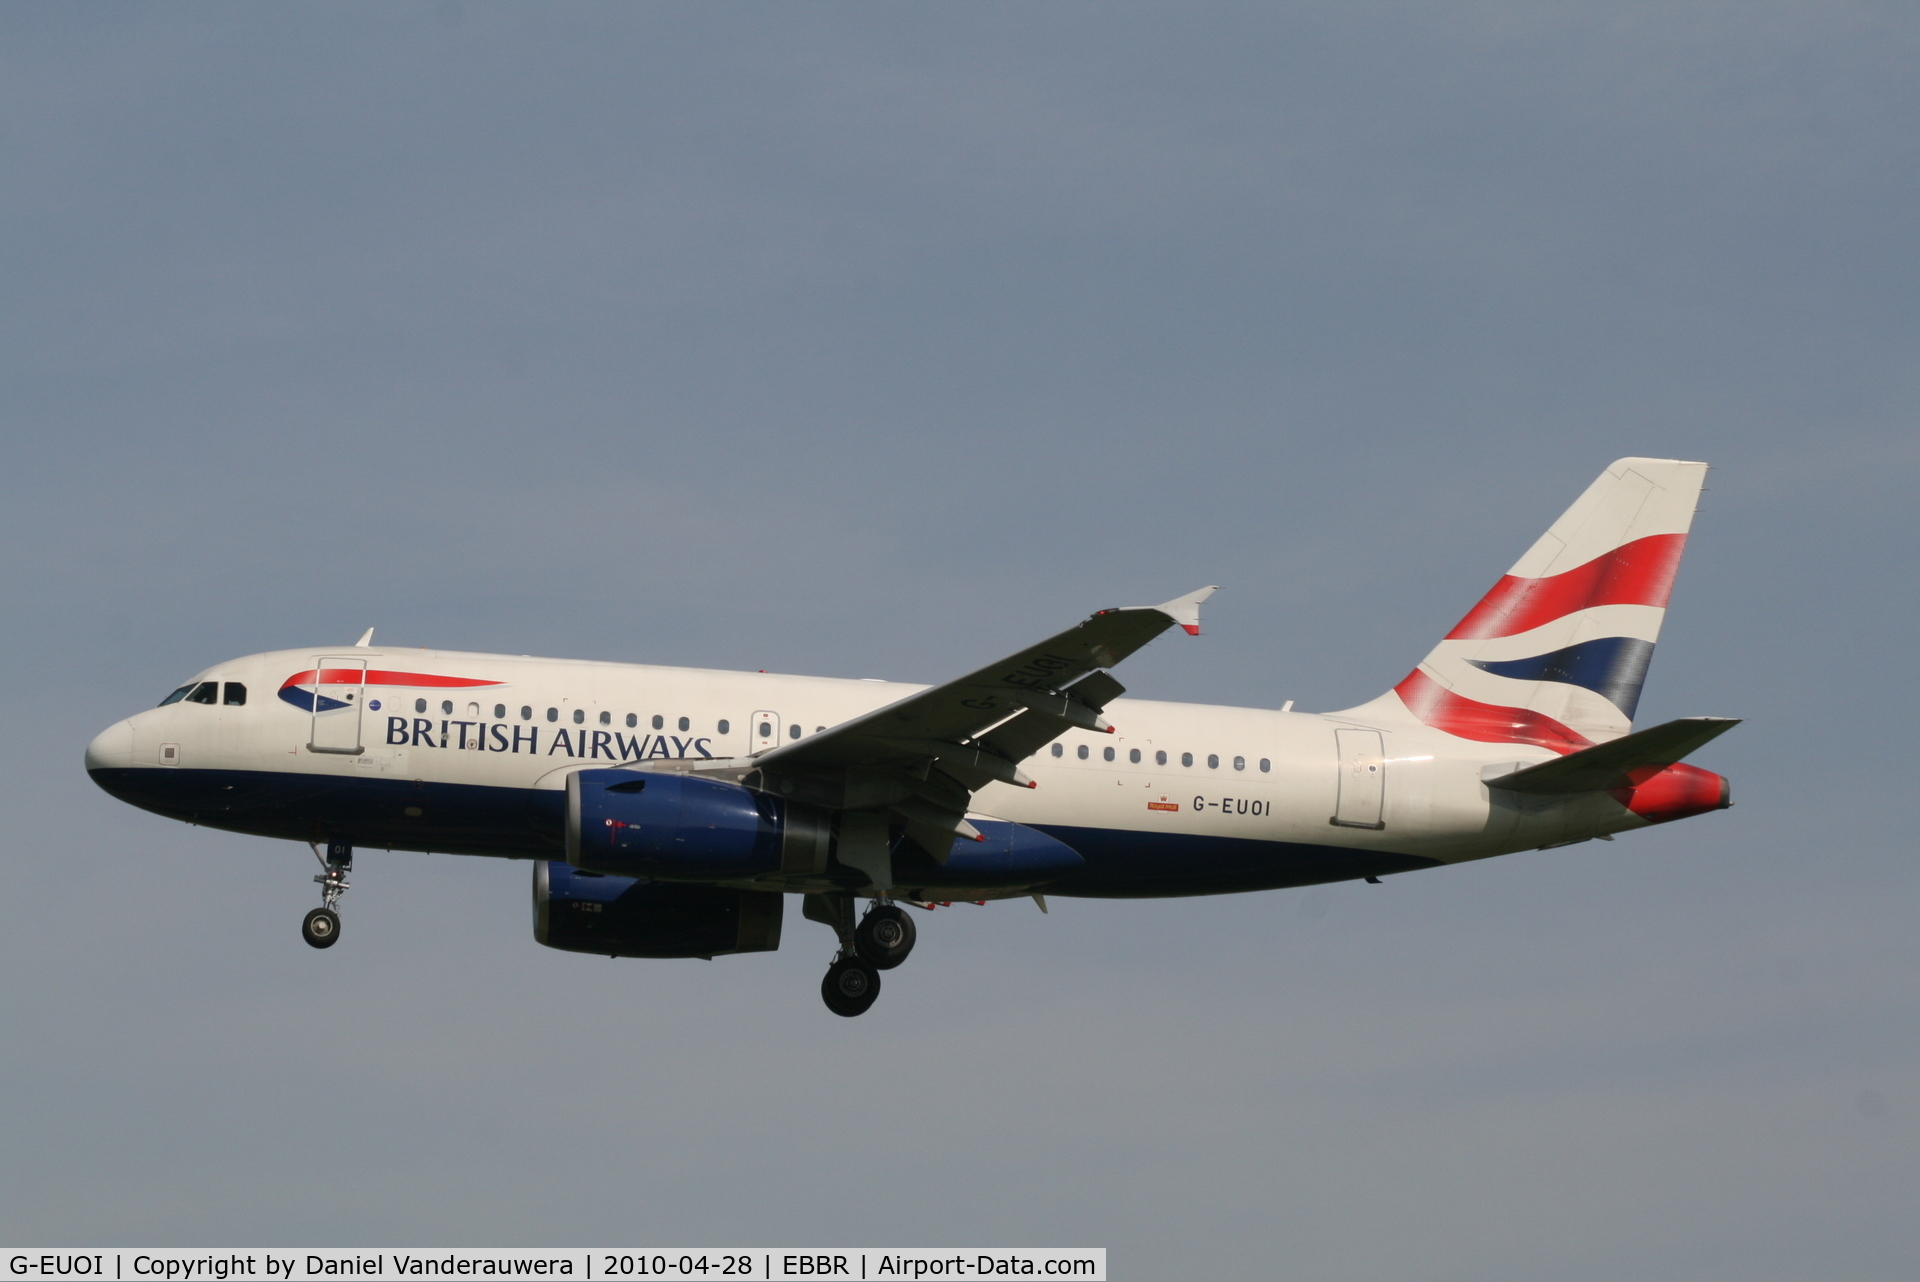 G-EUOI, 2001 Airbus A319-131 C/N 1606, Arrival of flight BA392 to RWY 25L